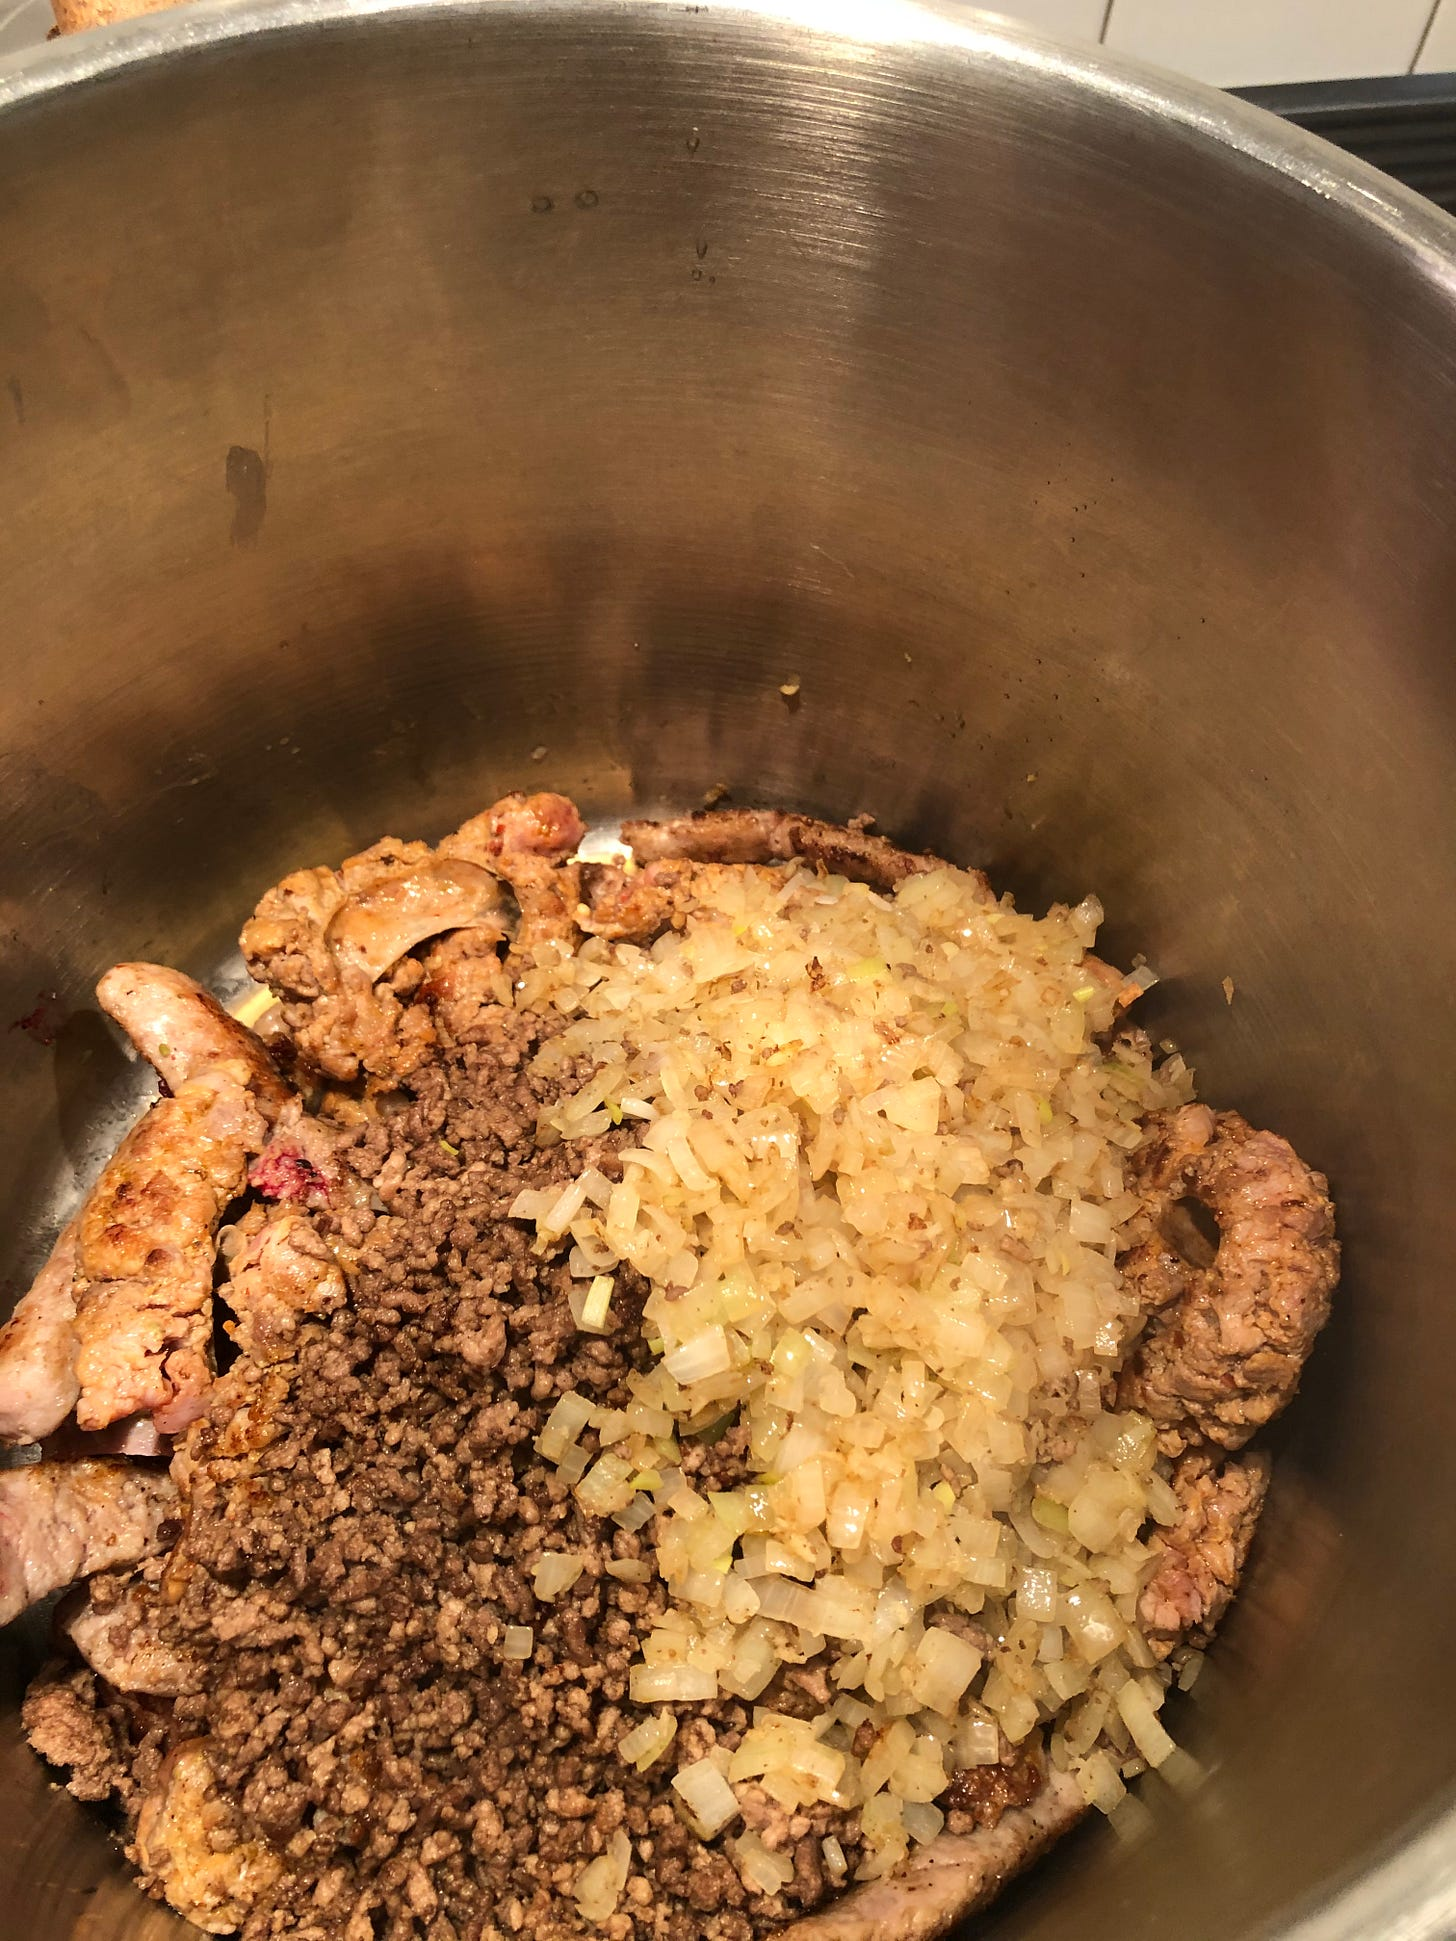 The meats previously shown, now browned with some sauteed onions in a large stock pot